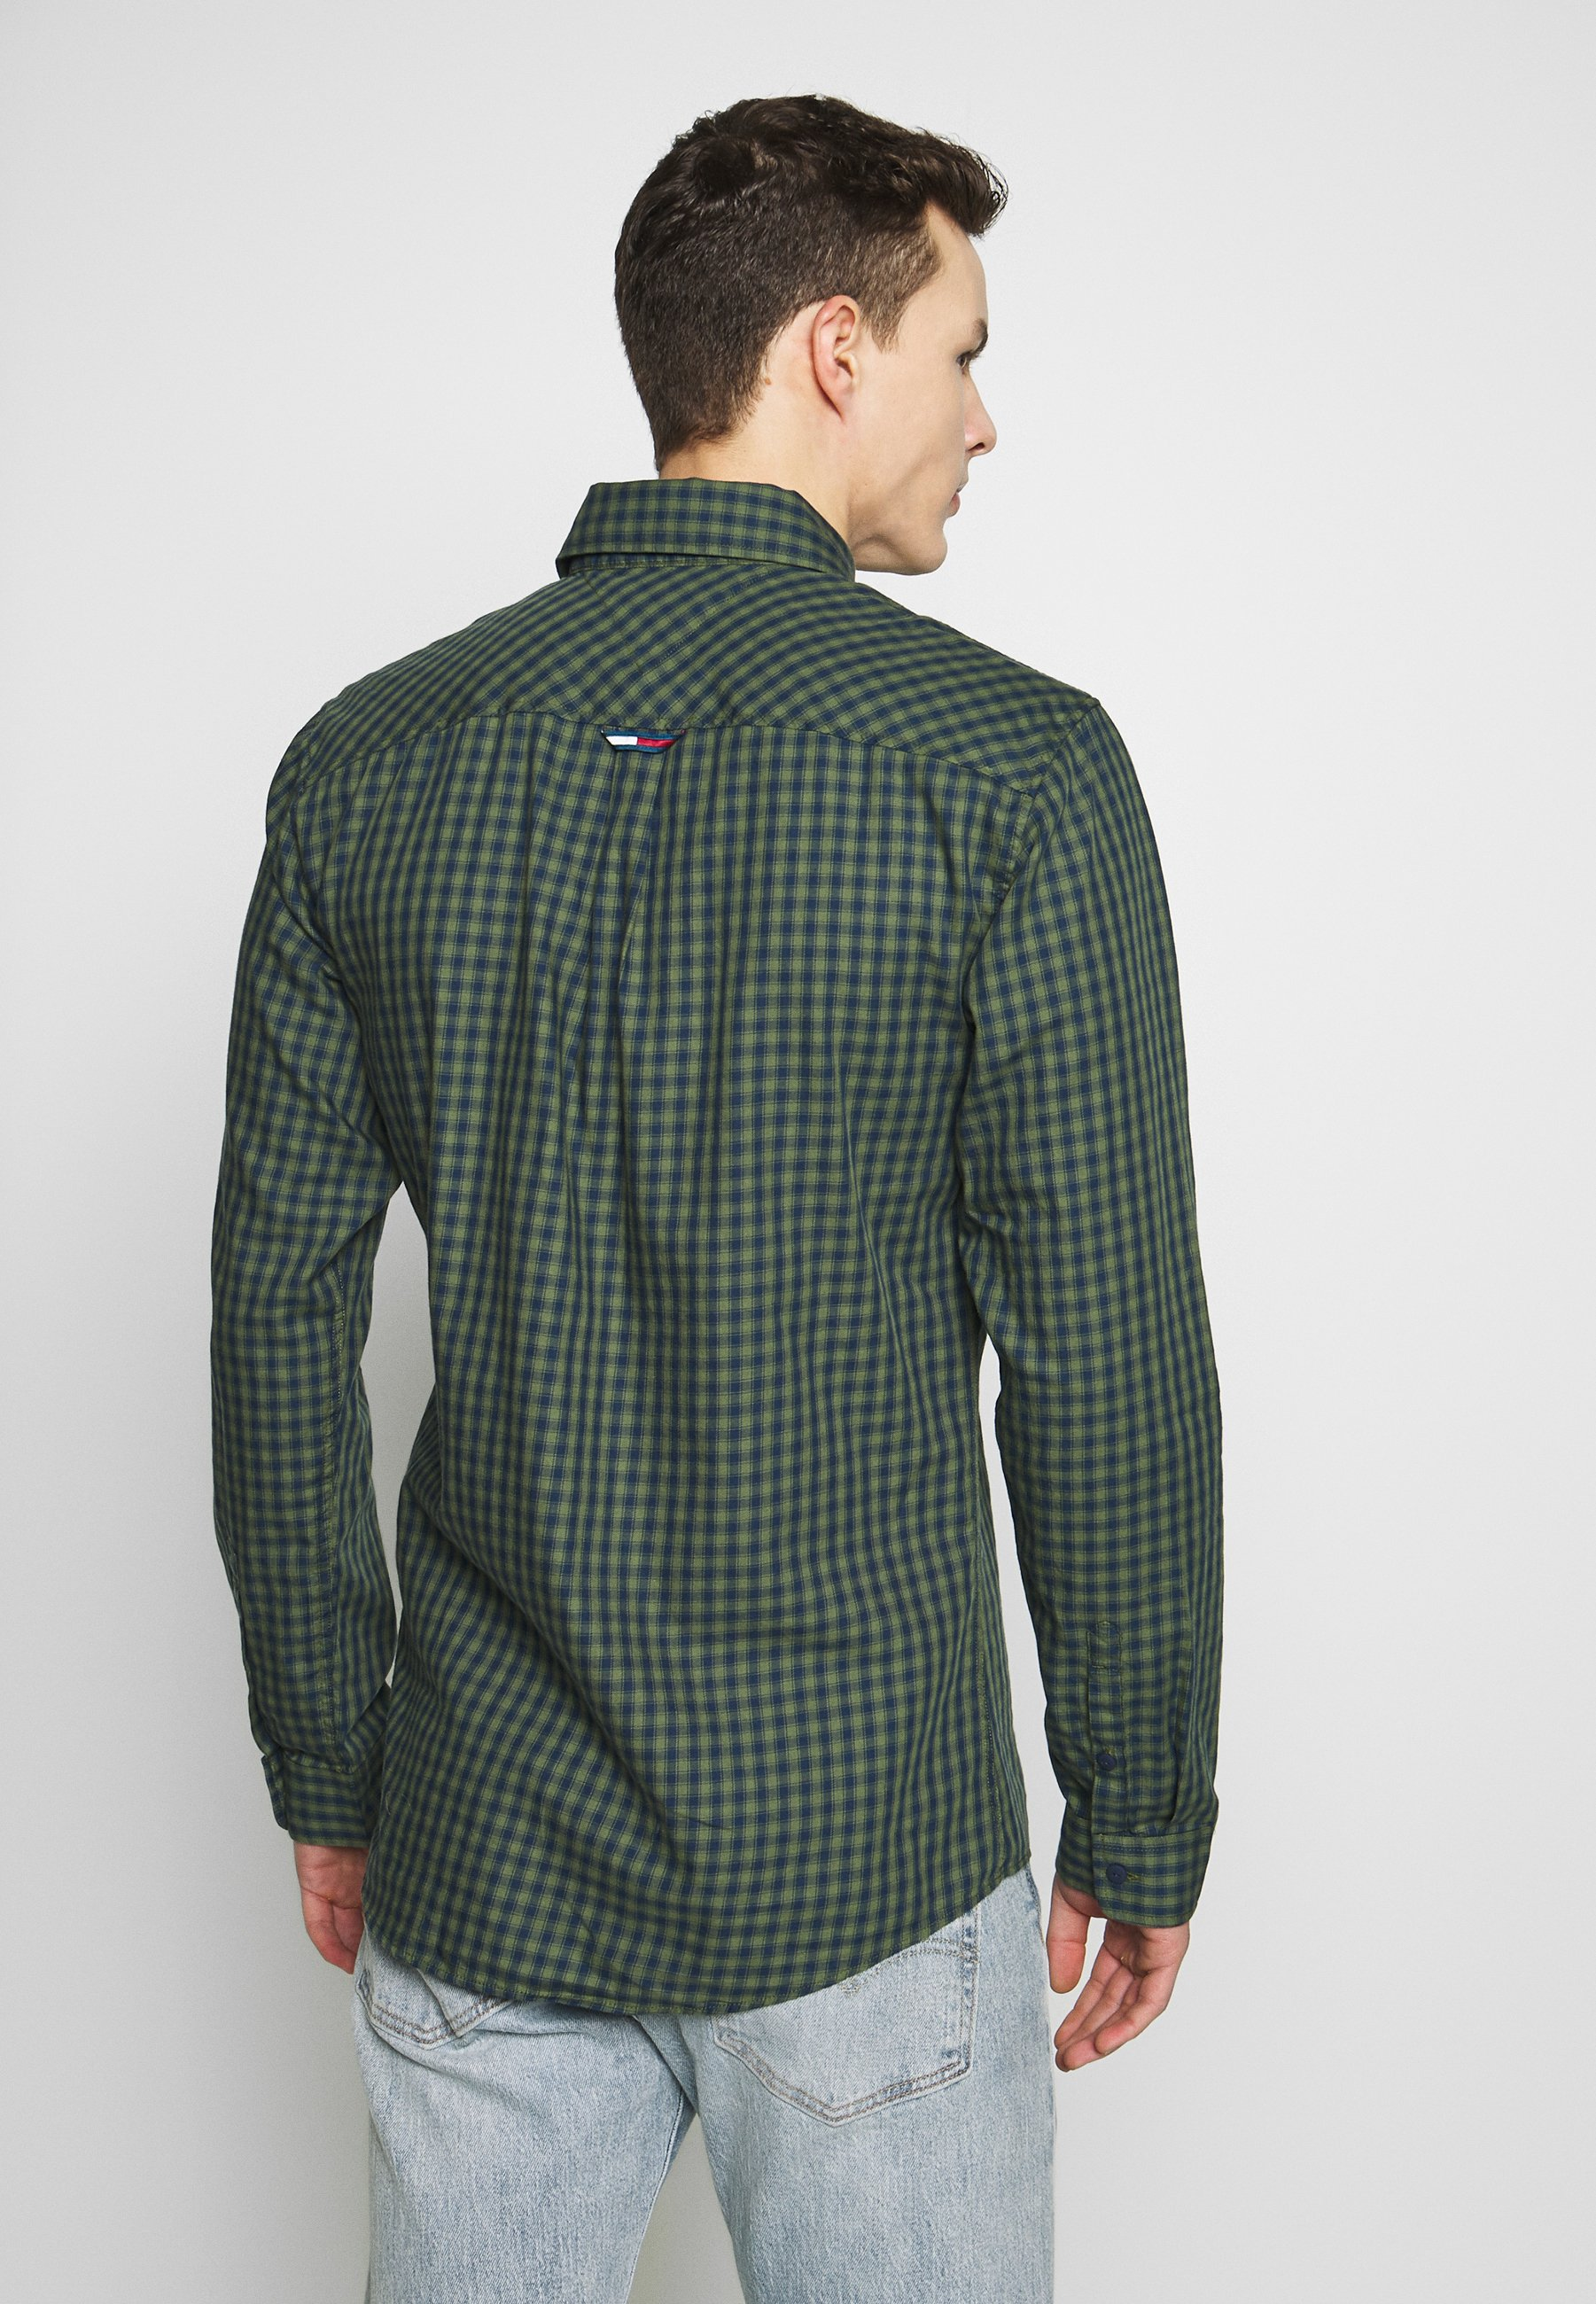 Tommy Jeans Gingham Shirt - Black Iris/cypress UK